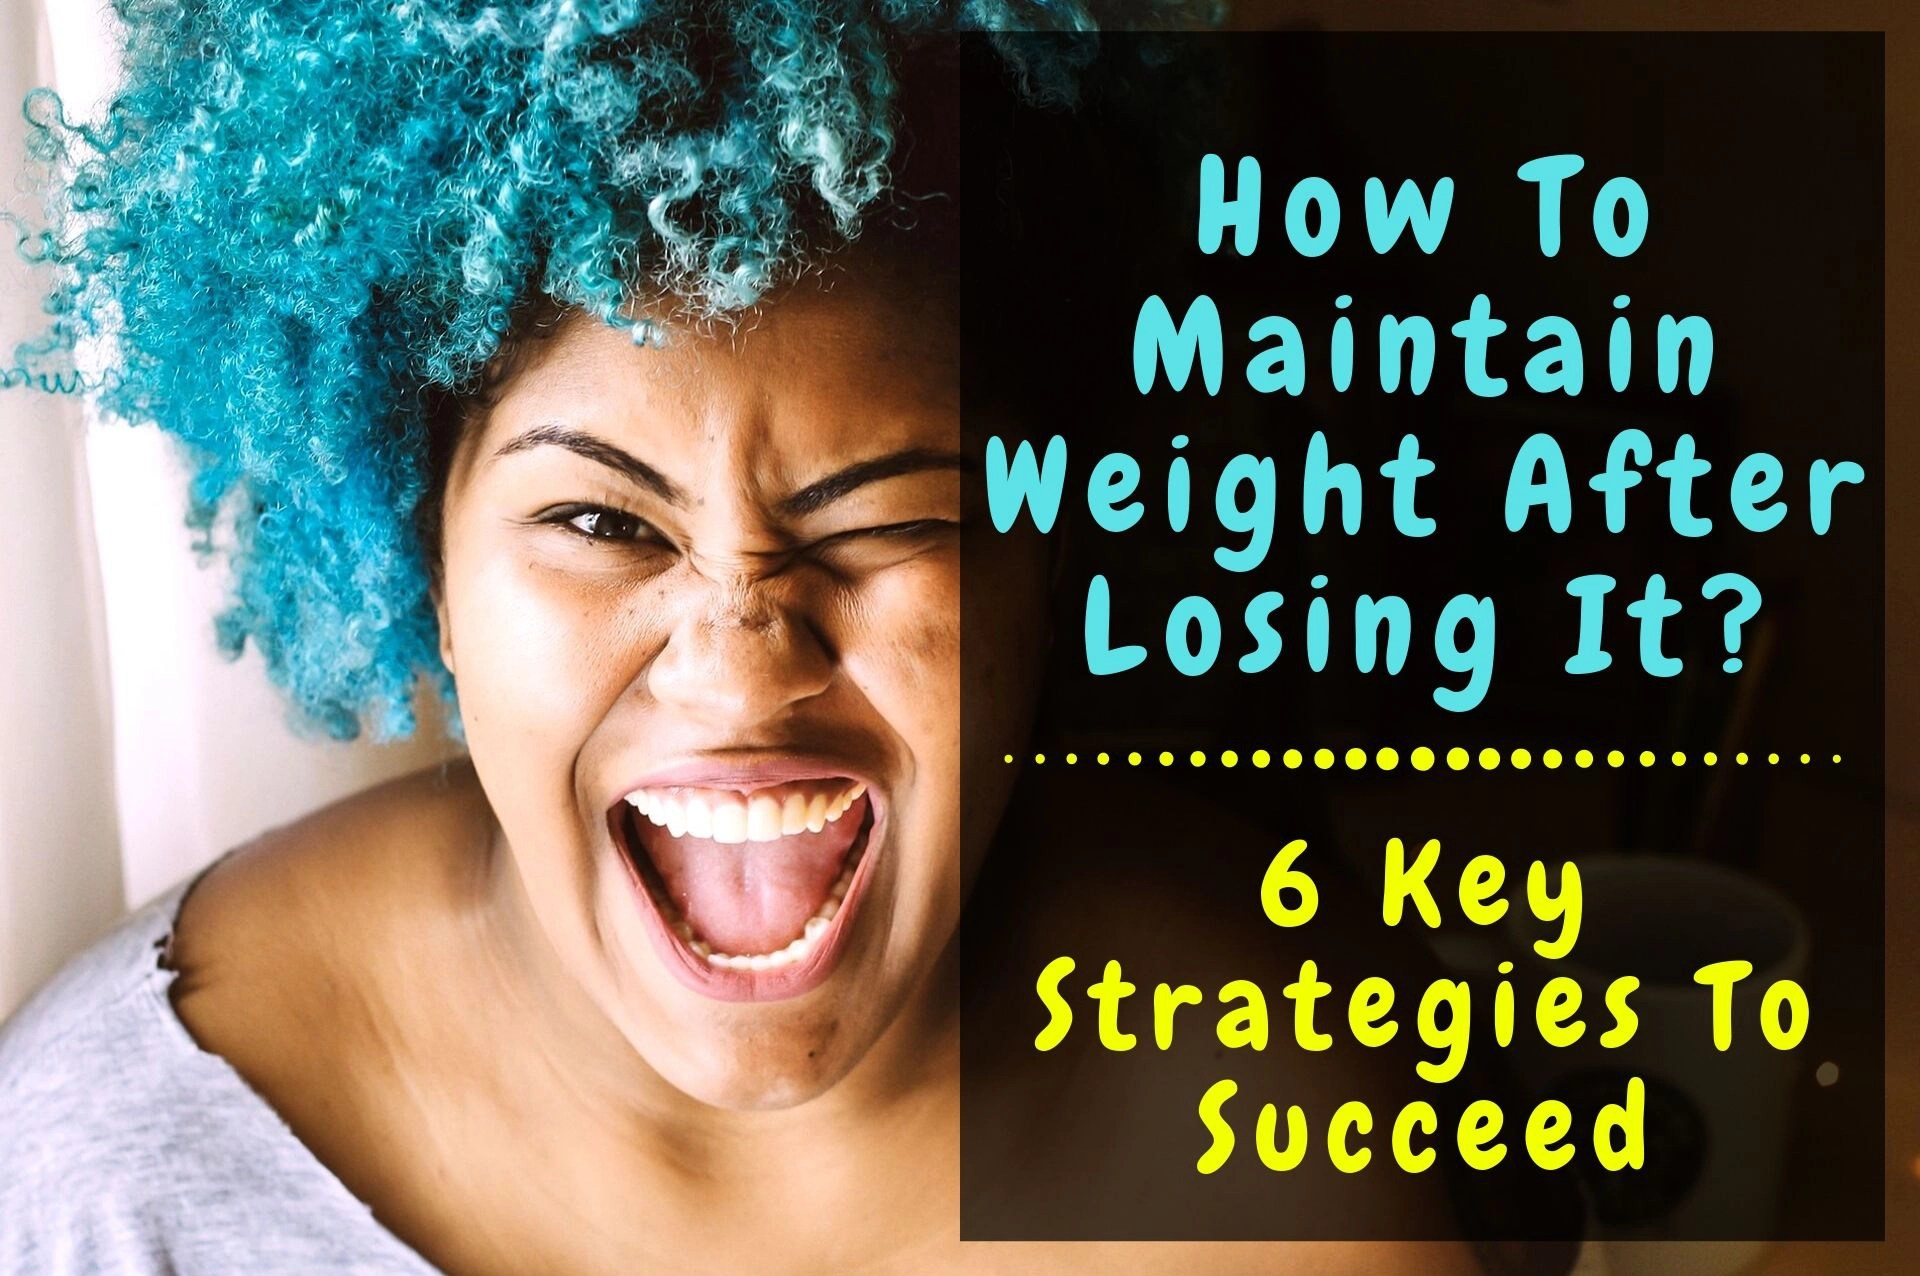 How To Maintain Weight After Losing It